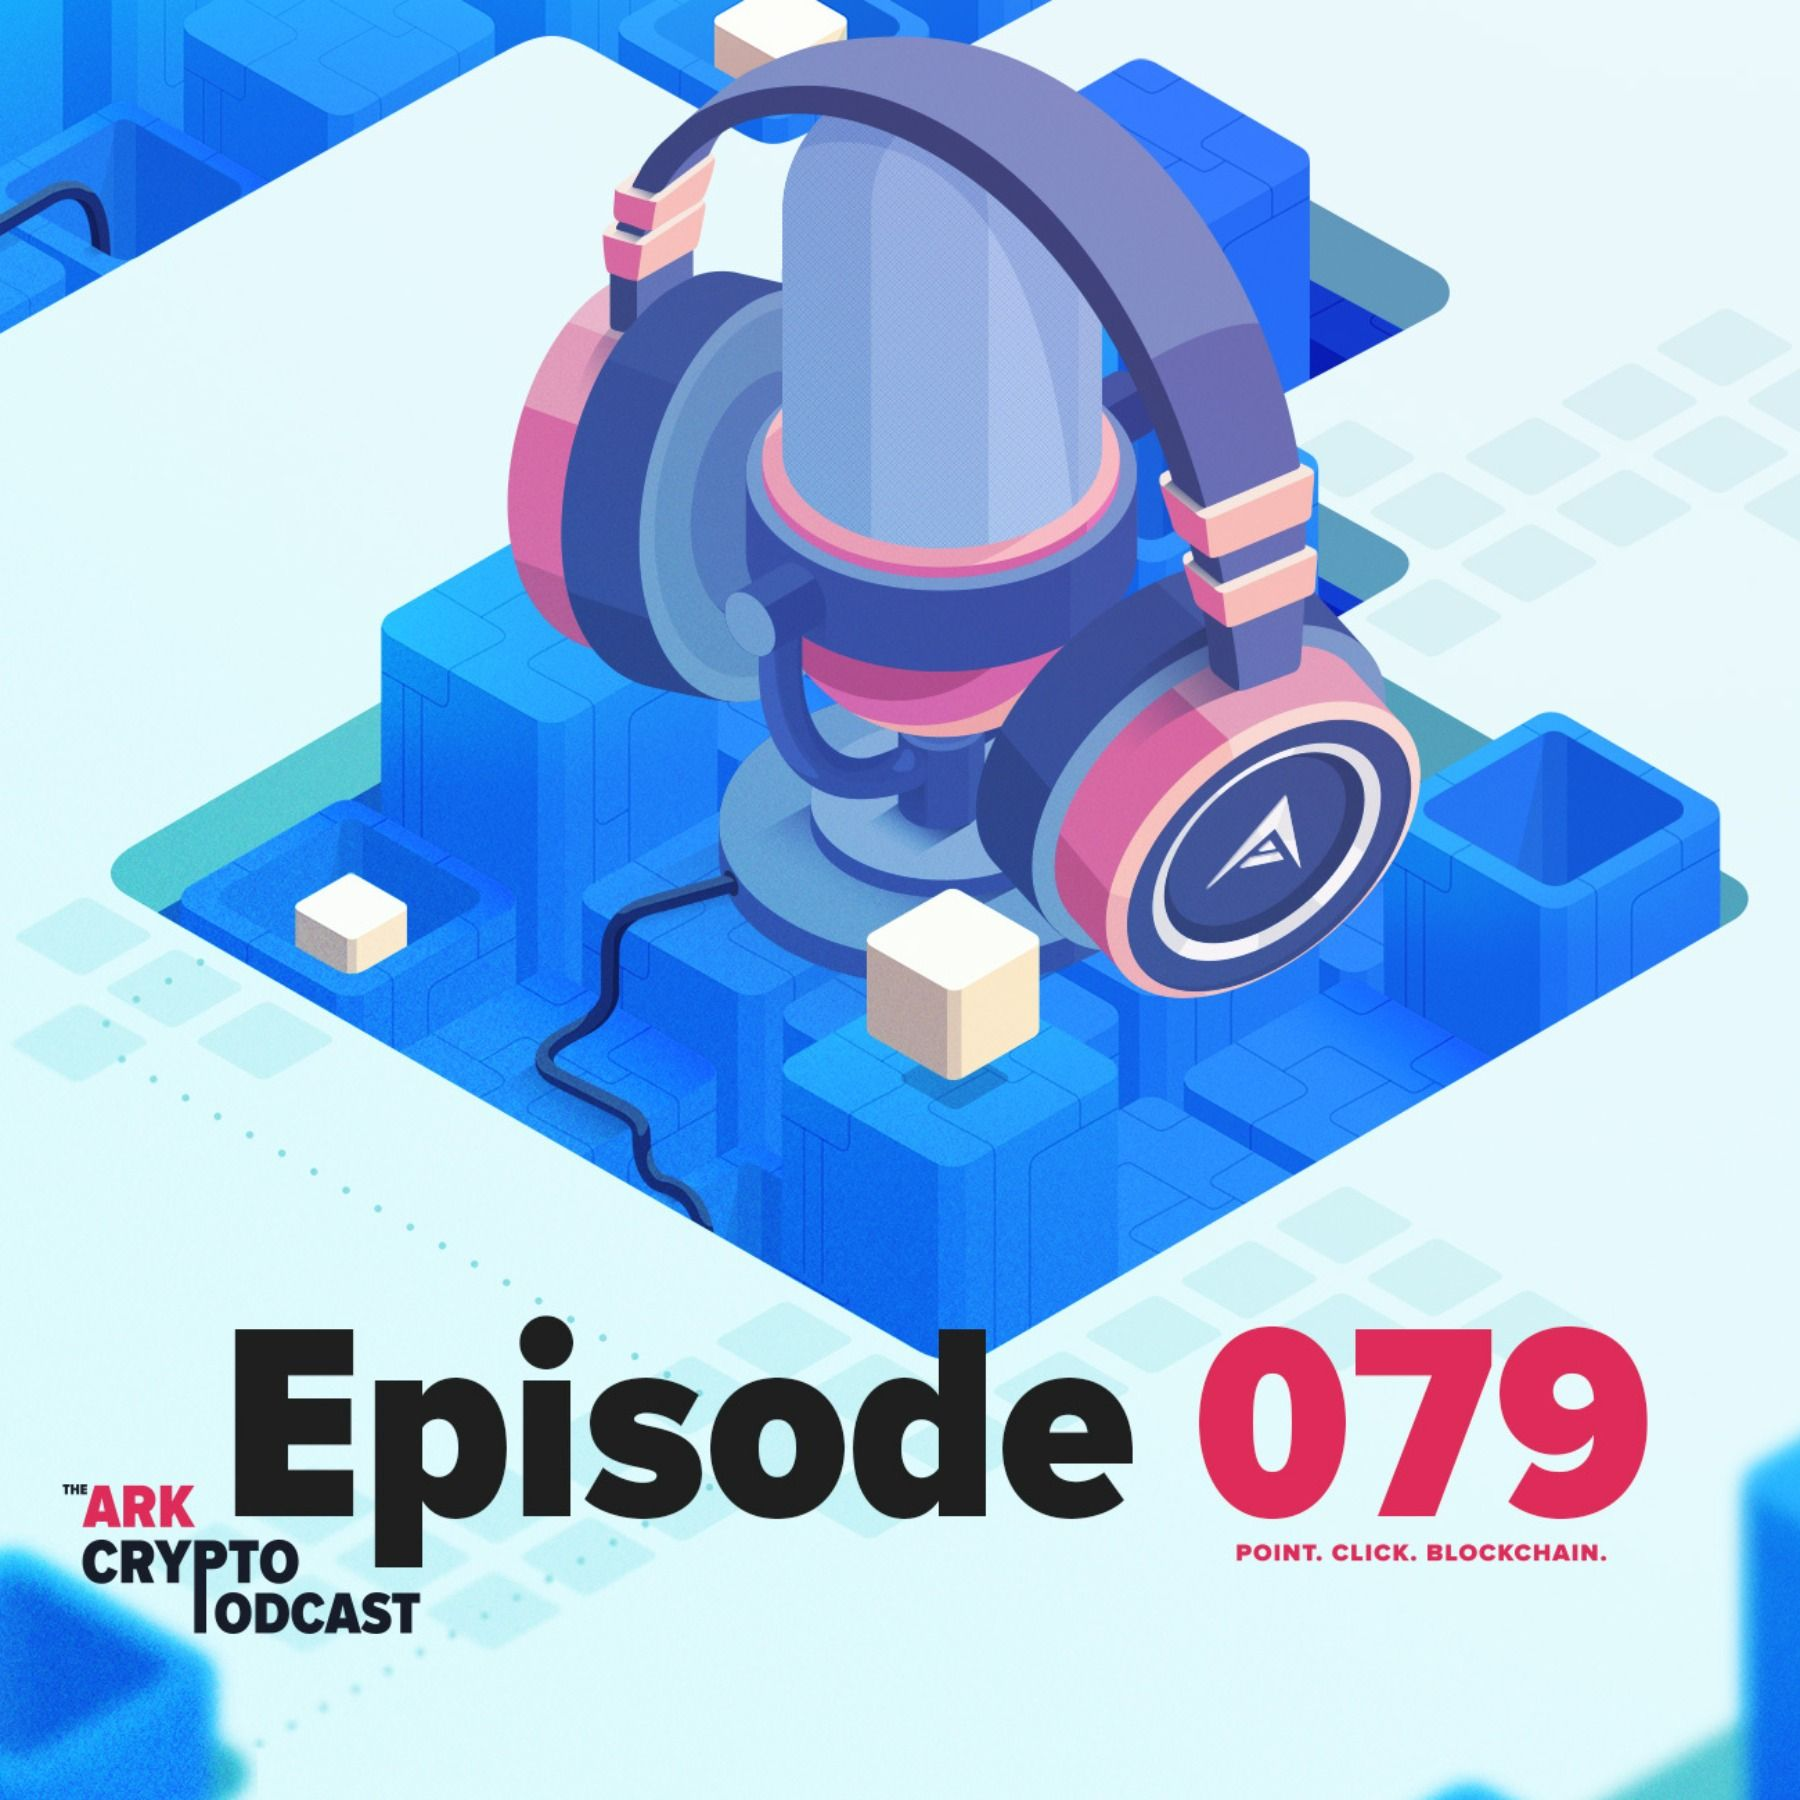 ARK Crypto Podcast #079 - A Breakdown of the Ways to Share ARK